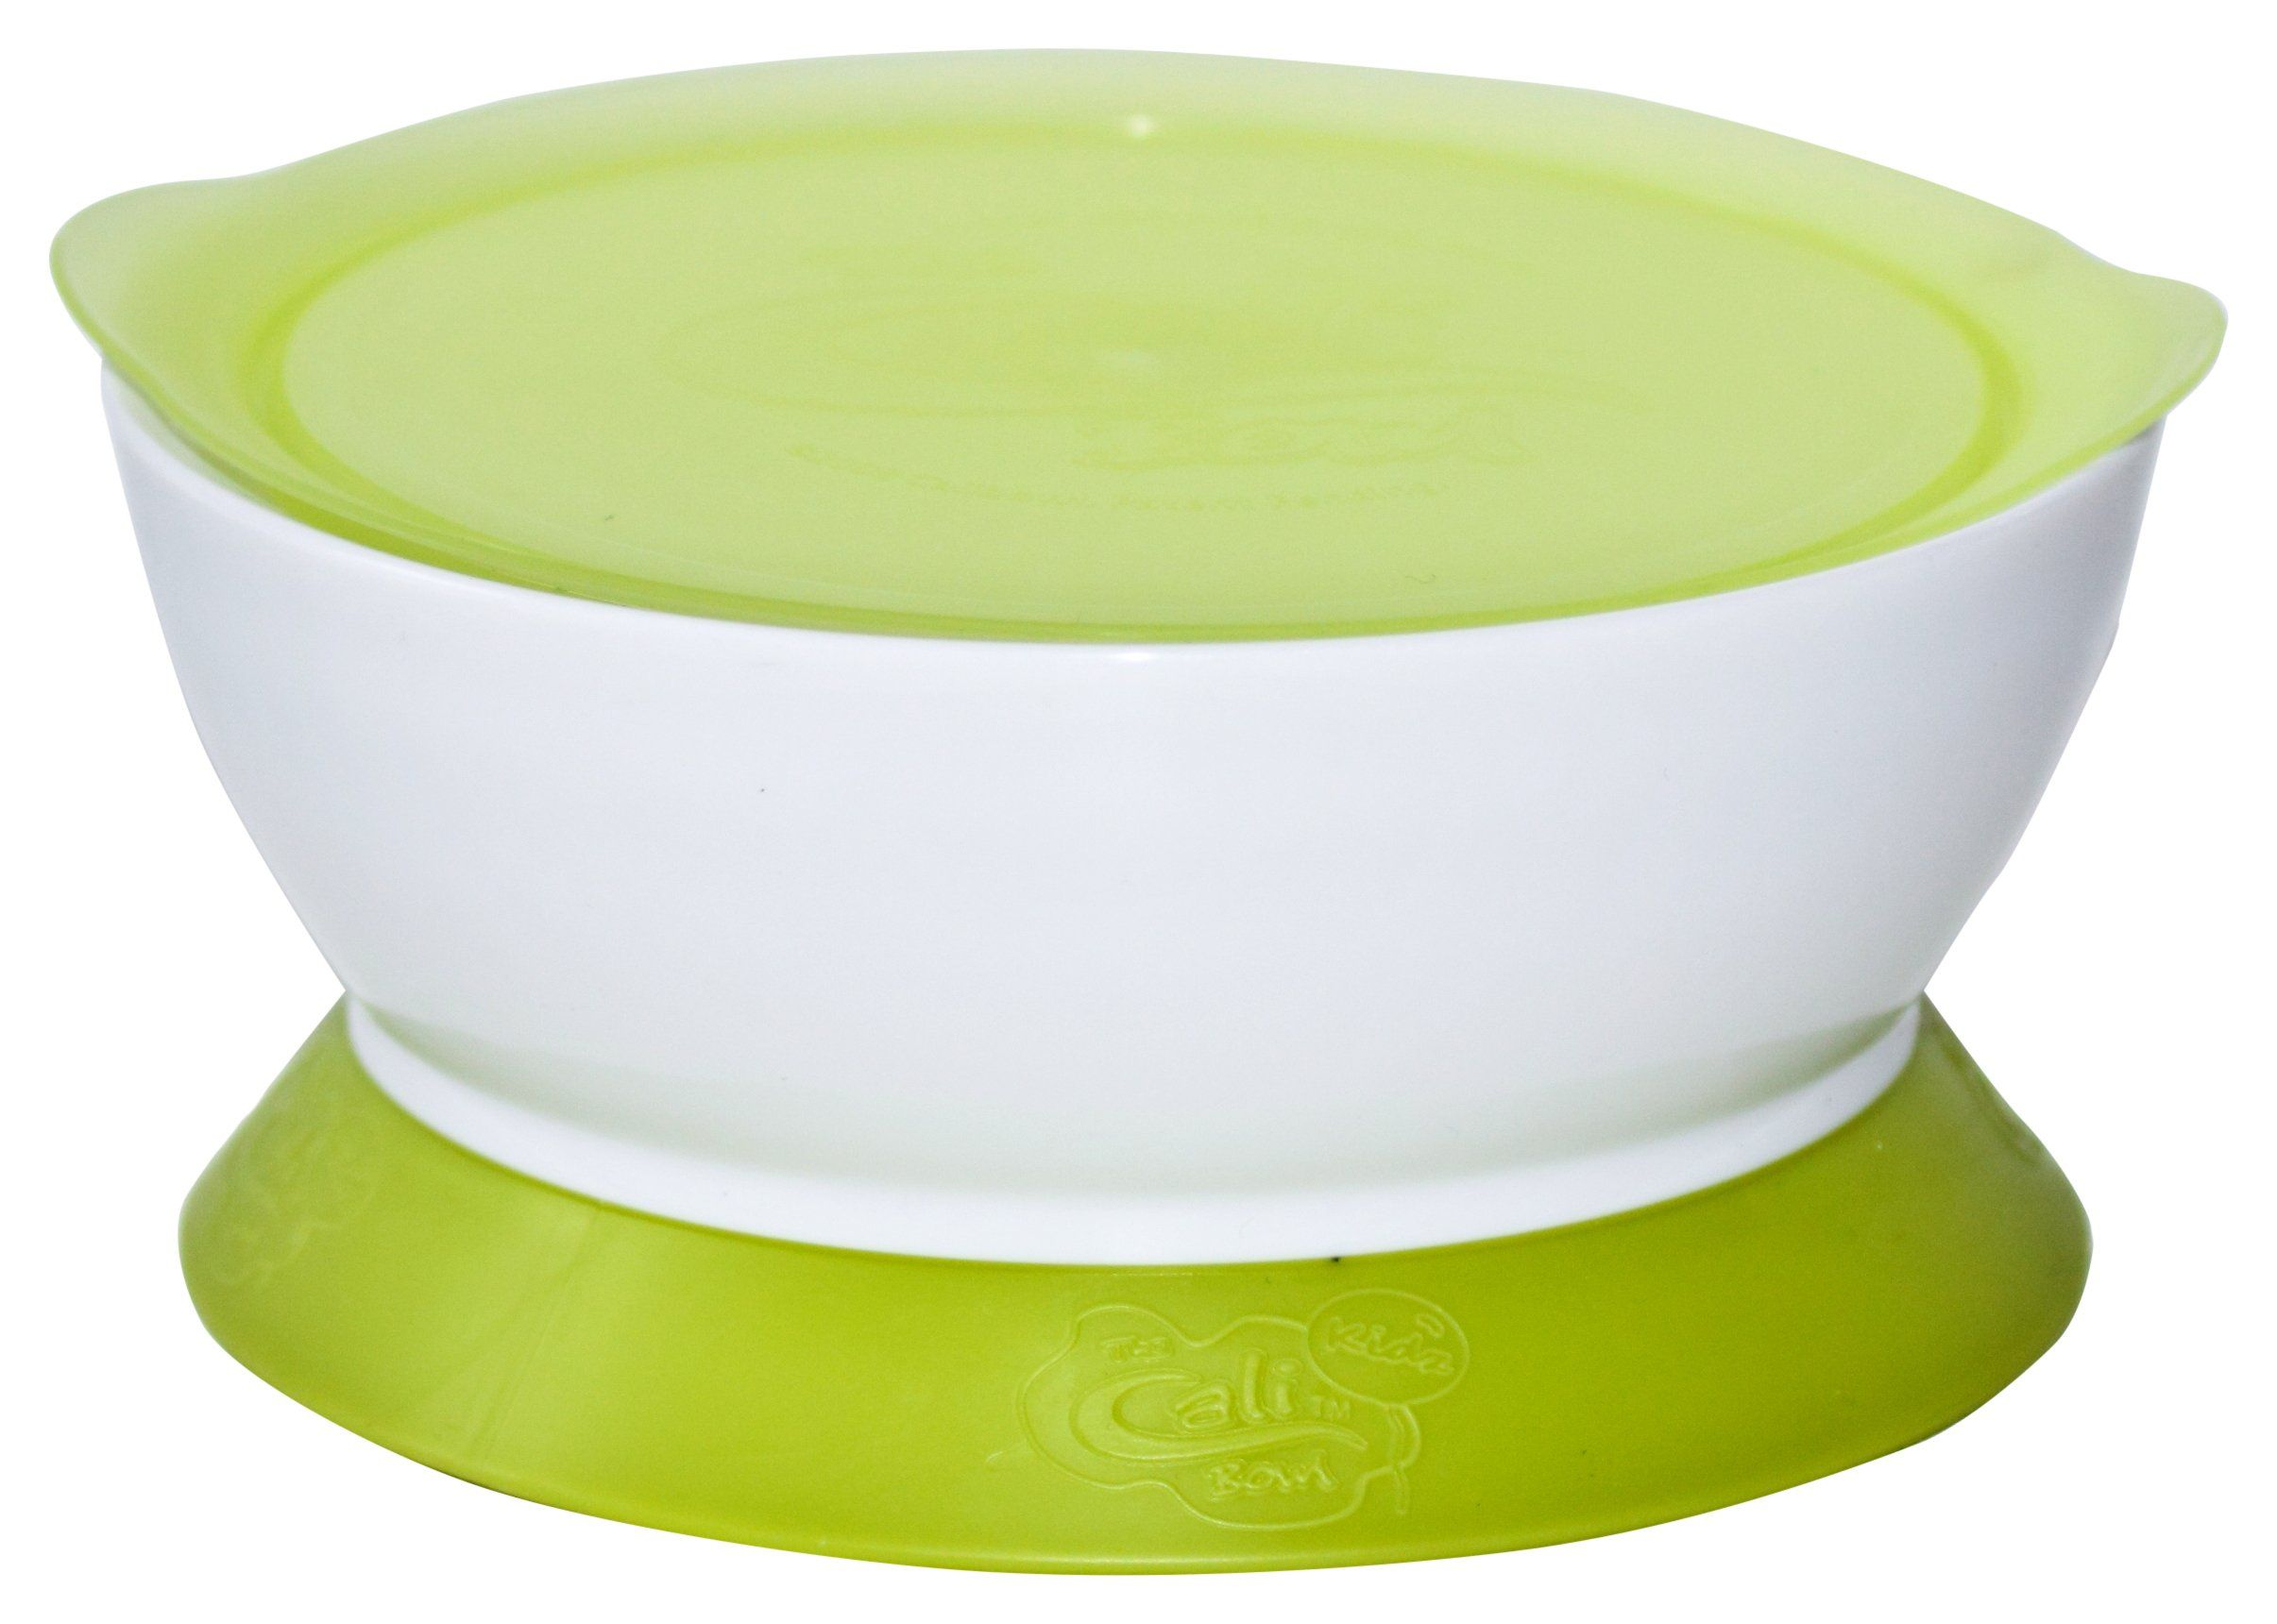 Amazon Com Calibowl 1 1 2 Cup Suction Bowl And Lid Green Mixing Bowls Kitchen Dining Suction Bowls Bowl Mixing Bowls